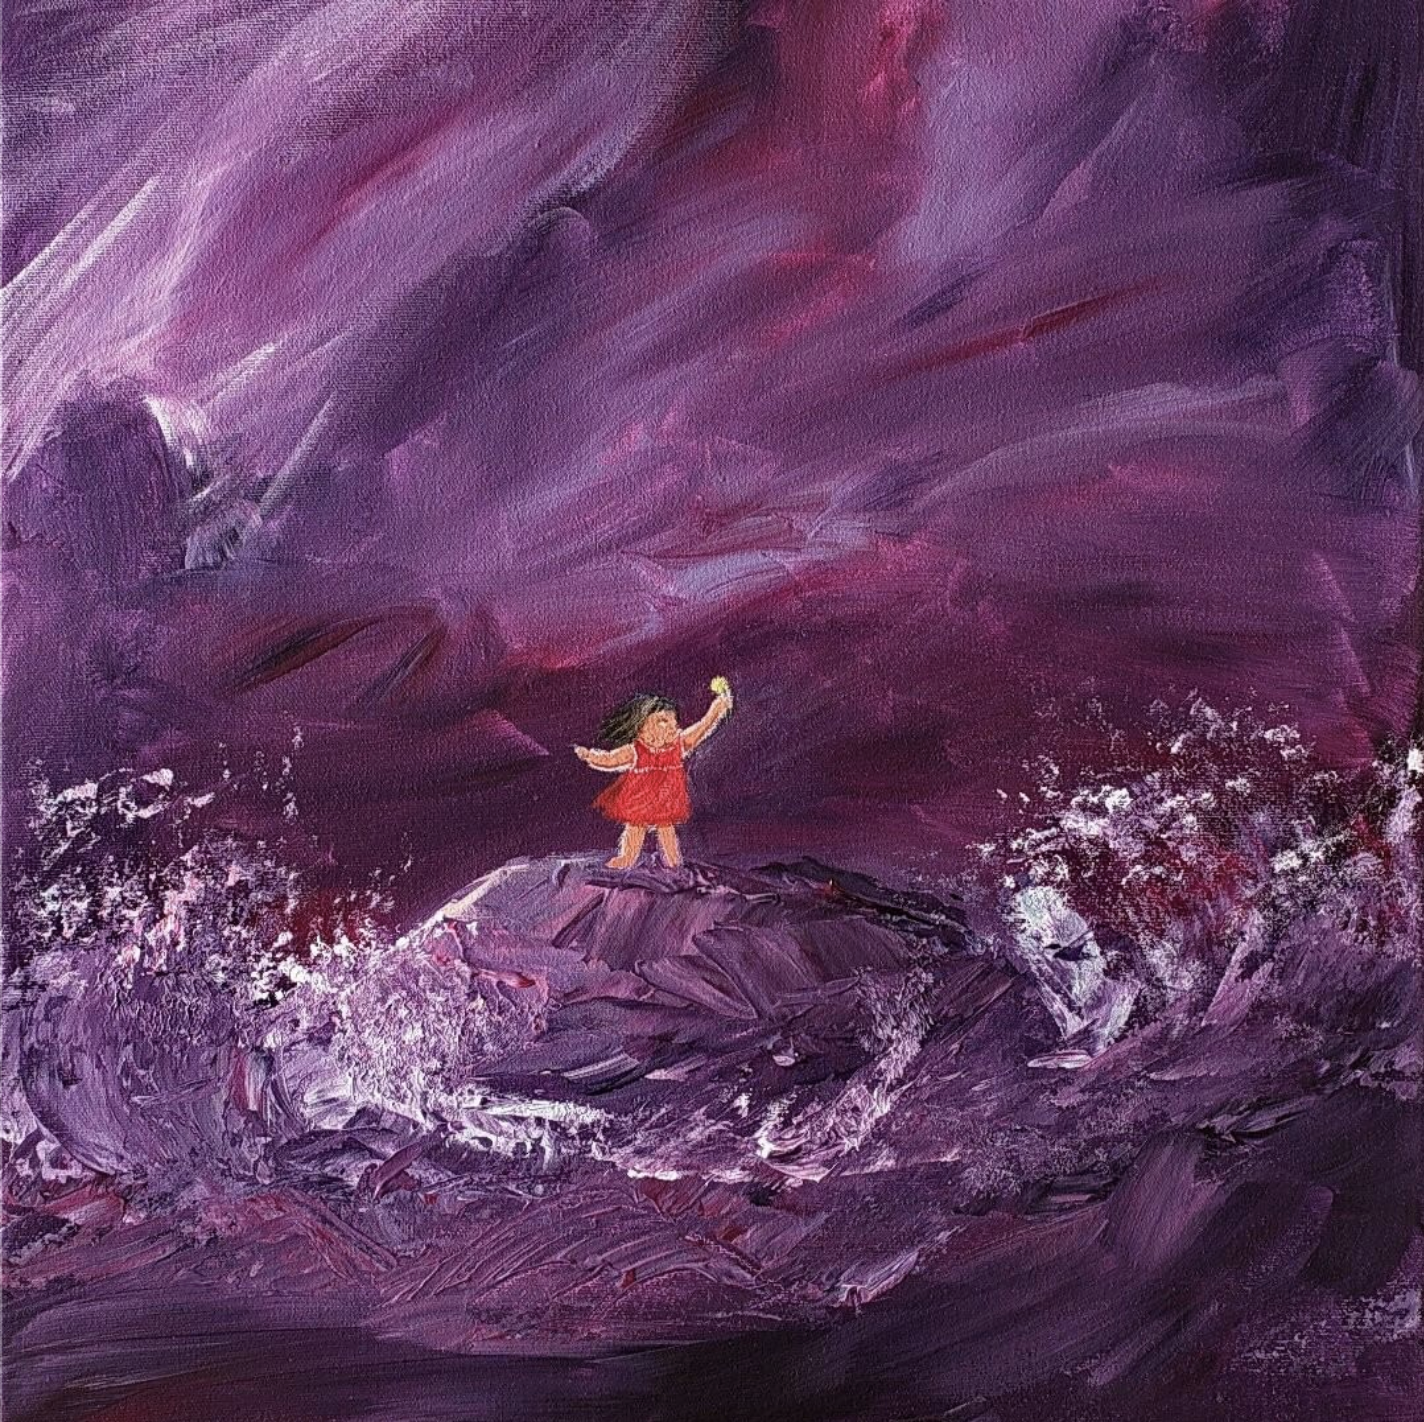 A painting of a child in a red dress holding a gift up to the sky, while waves crash nearby.